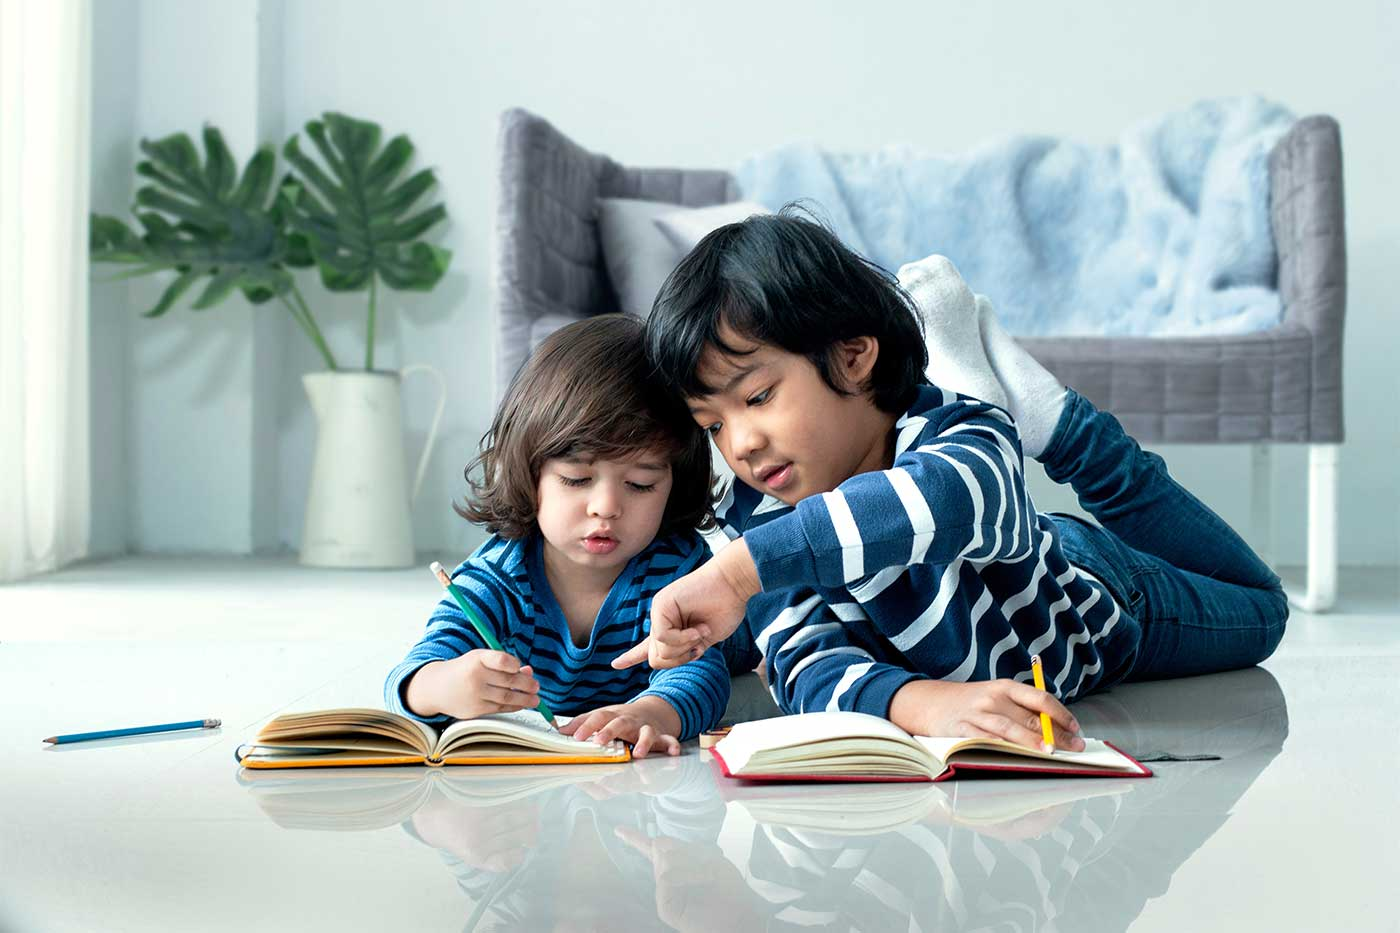 Older brother teaching his brother how to do homework